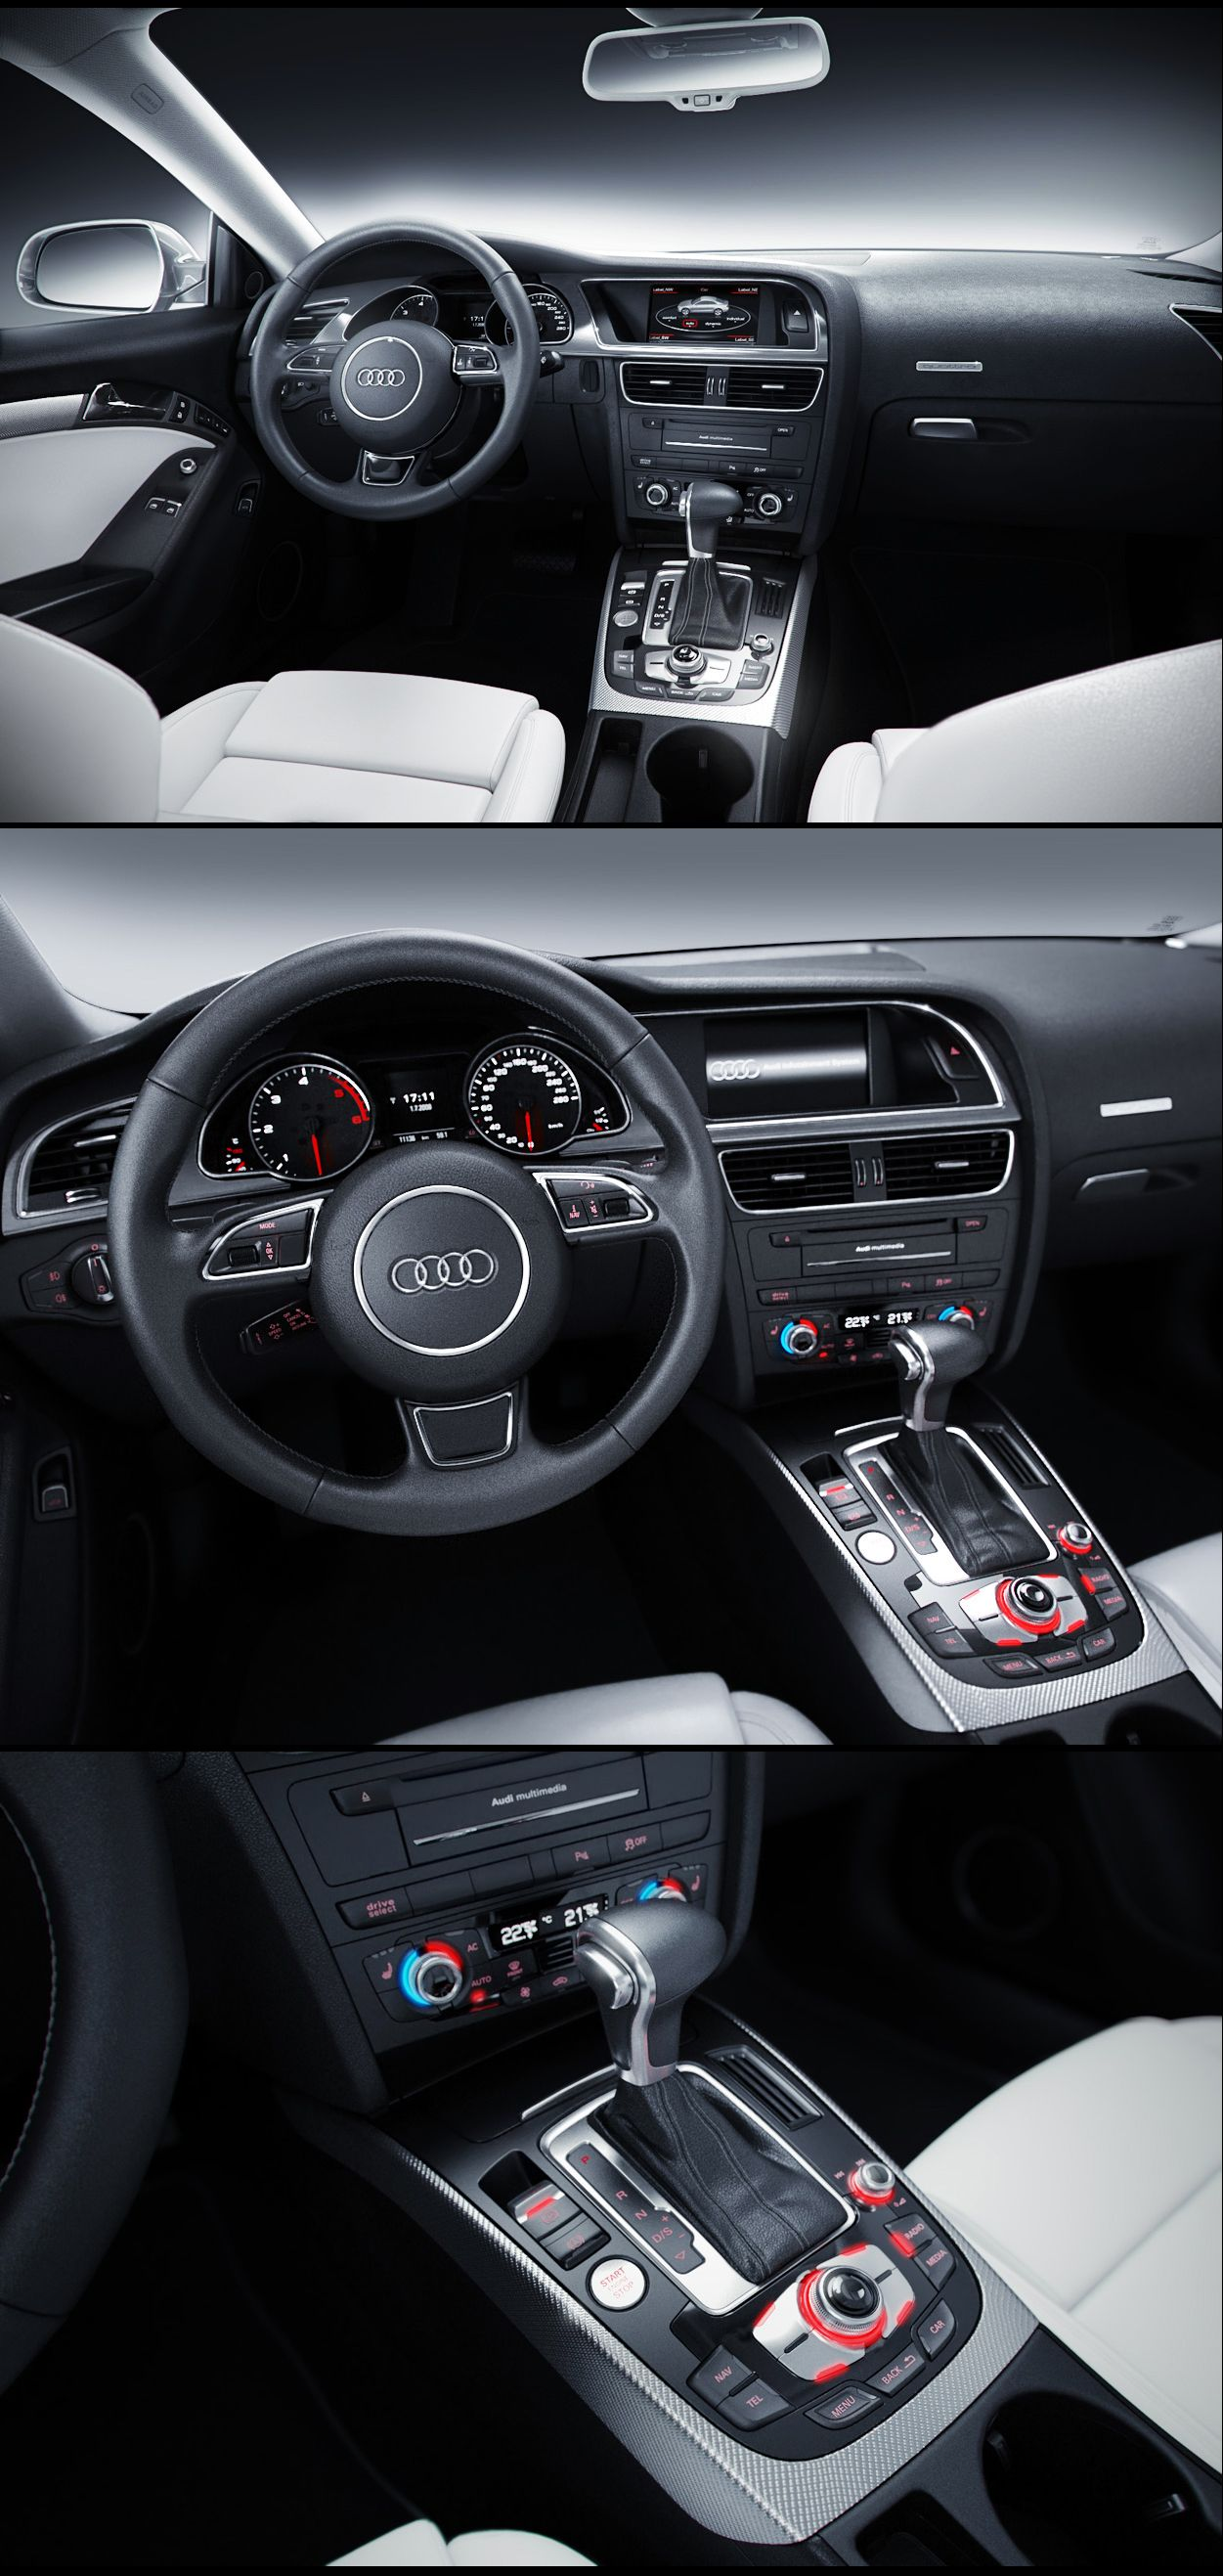 Audi A5 2011 Interior by MUCK ONE on DeviantArt